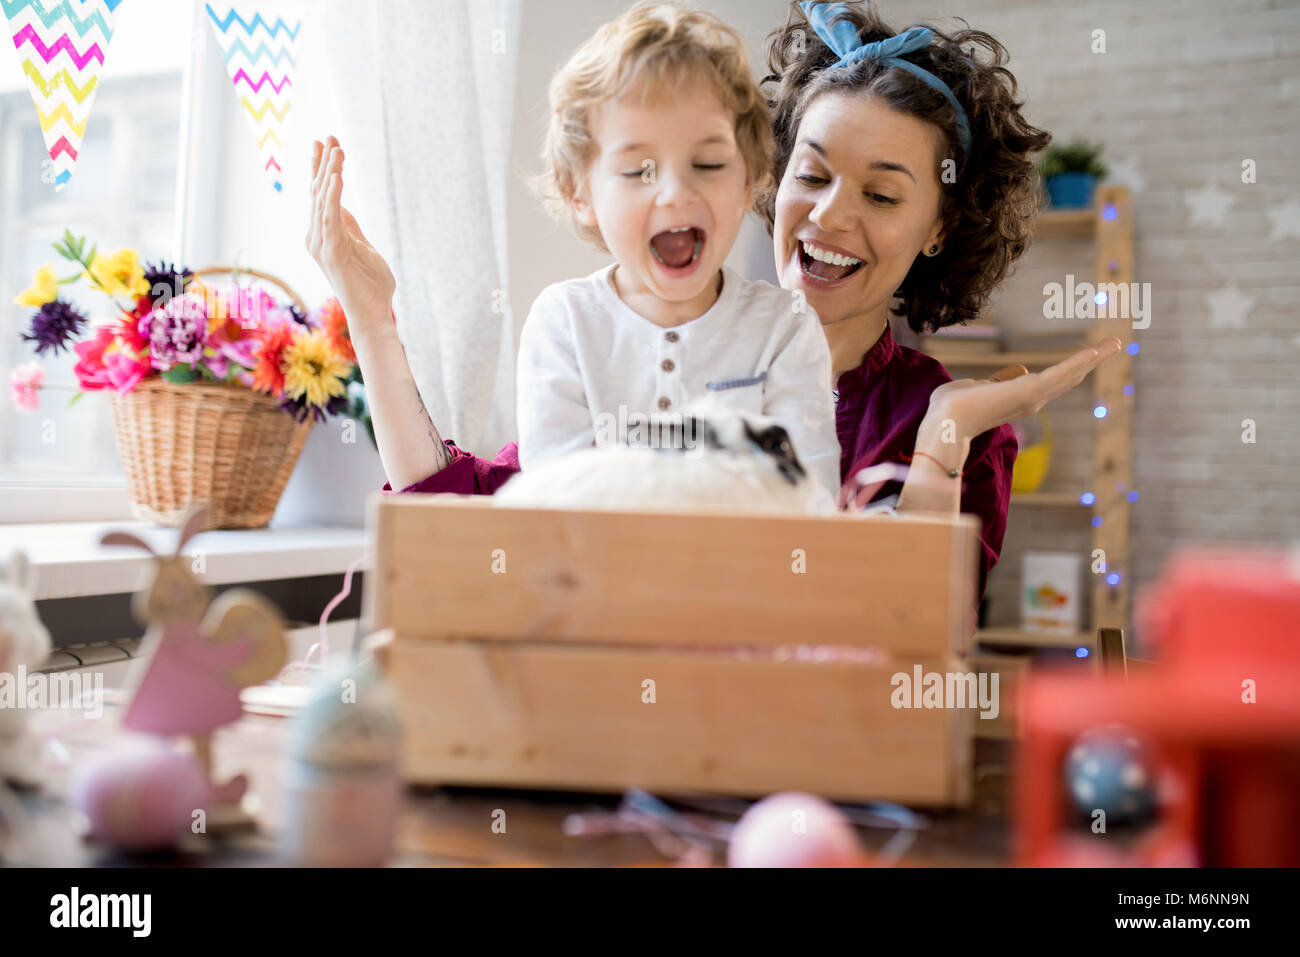 Young Mother Presenting Easter Bunny to Son - Stock Image